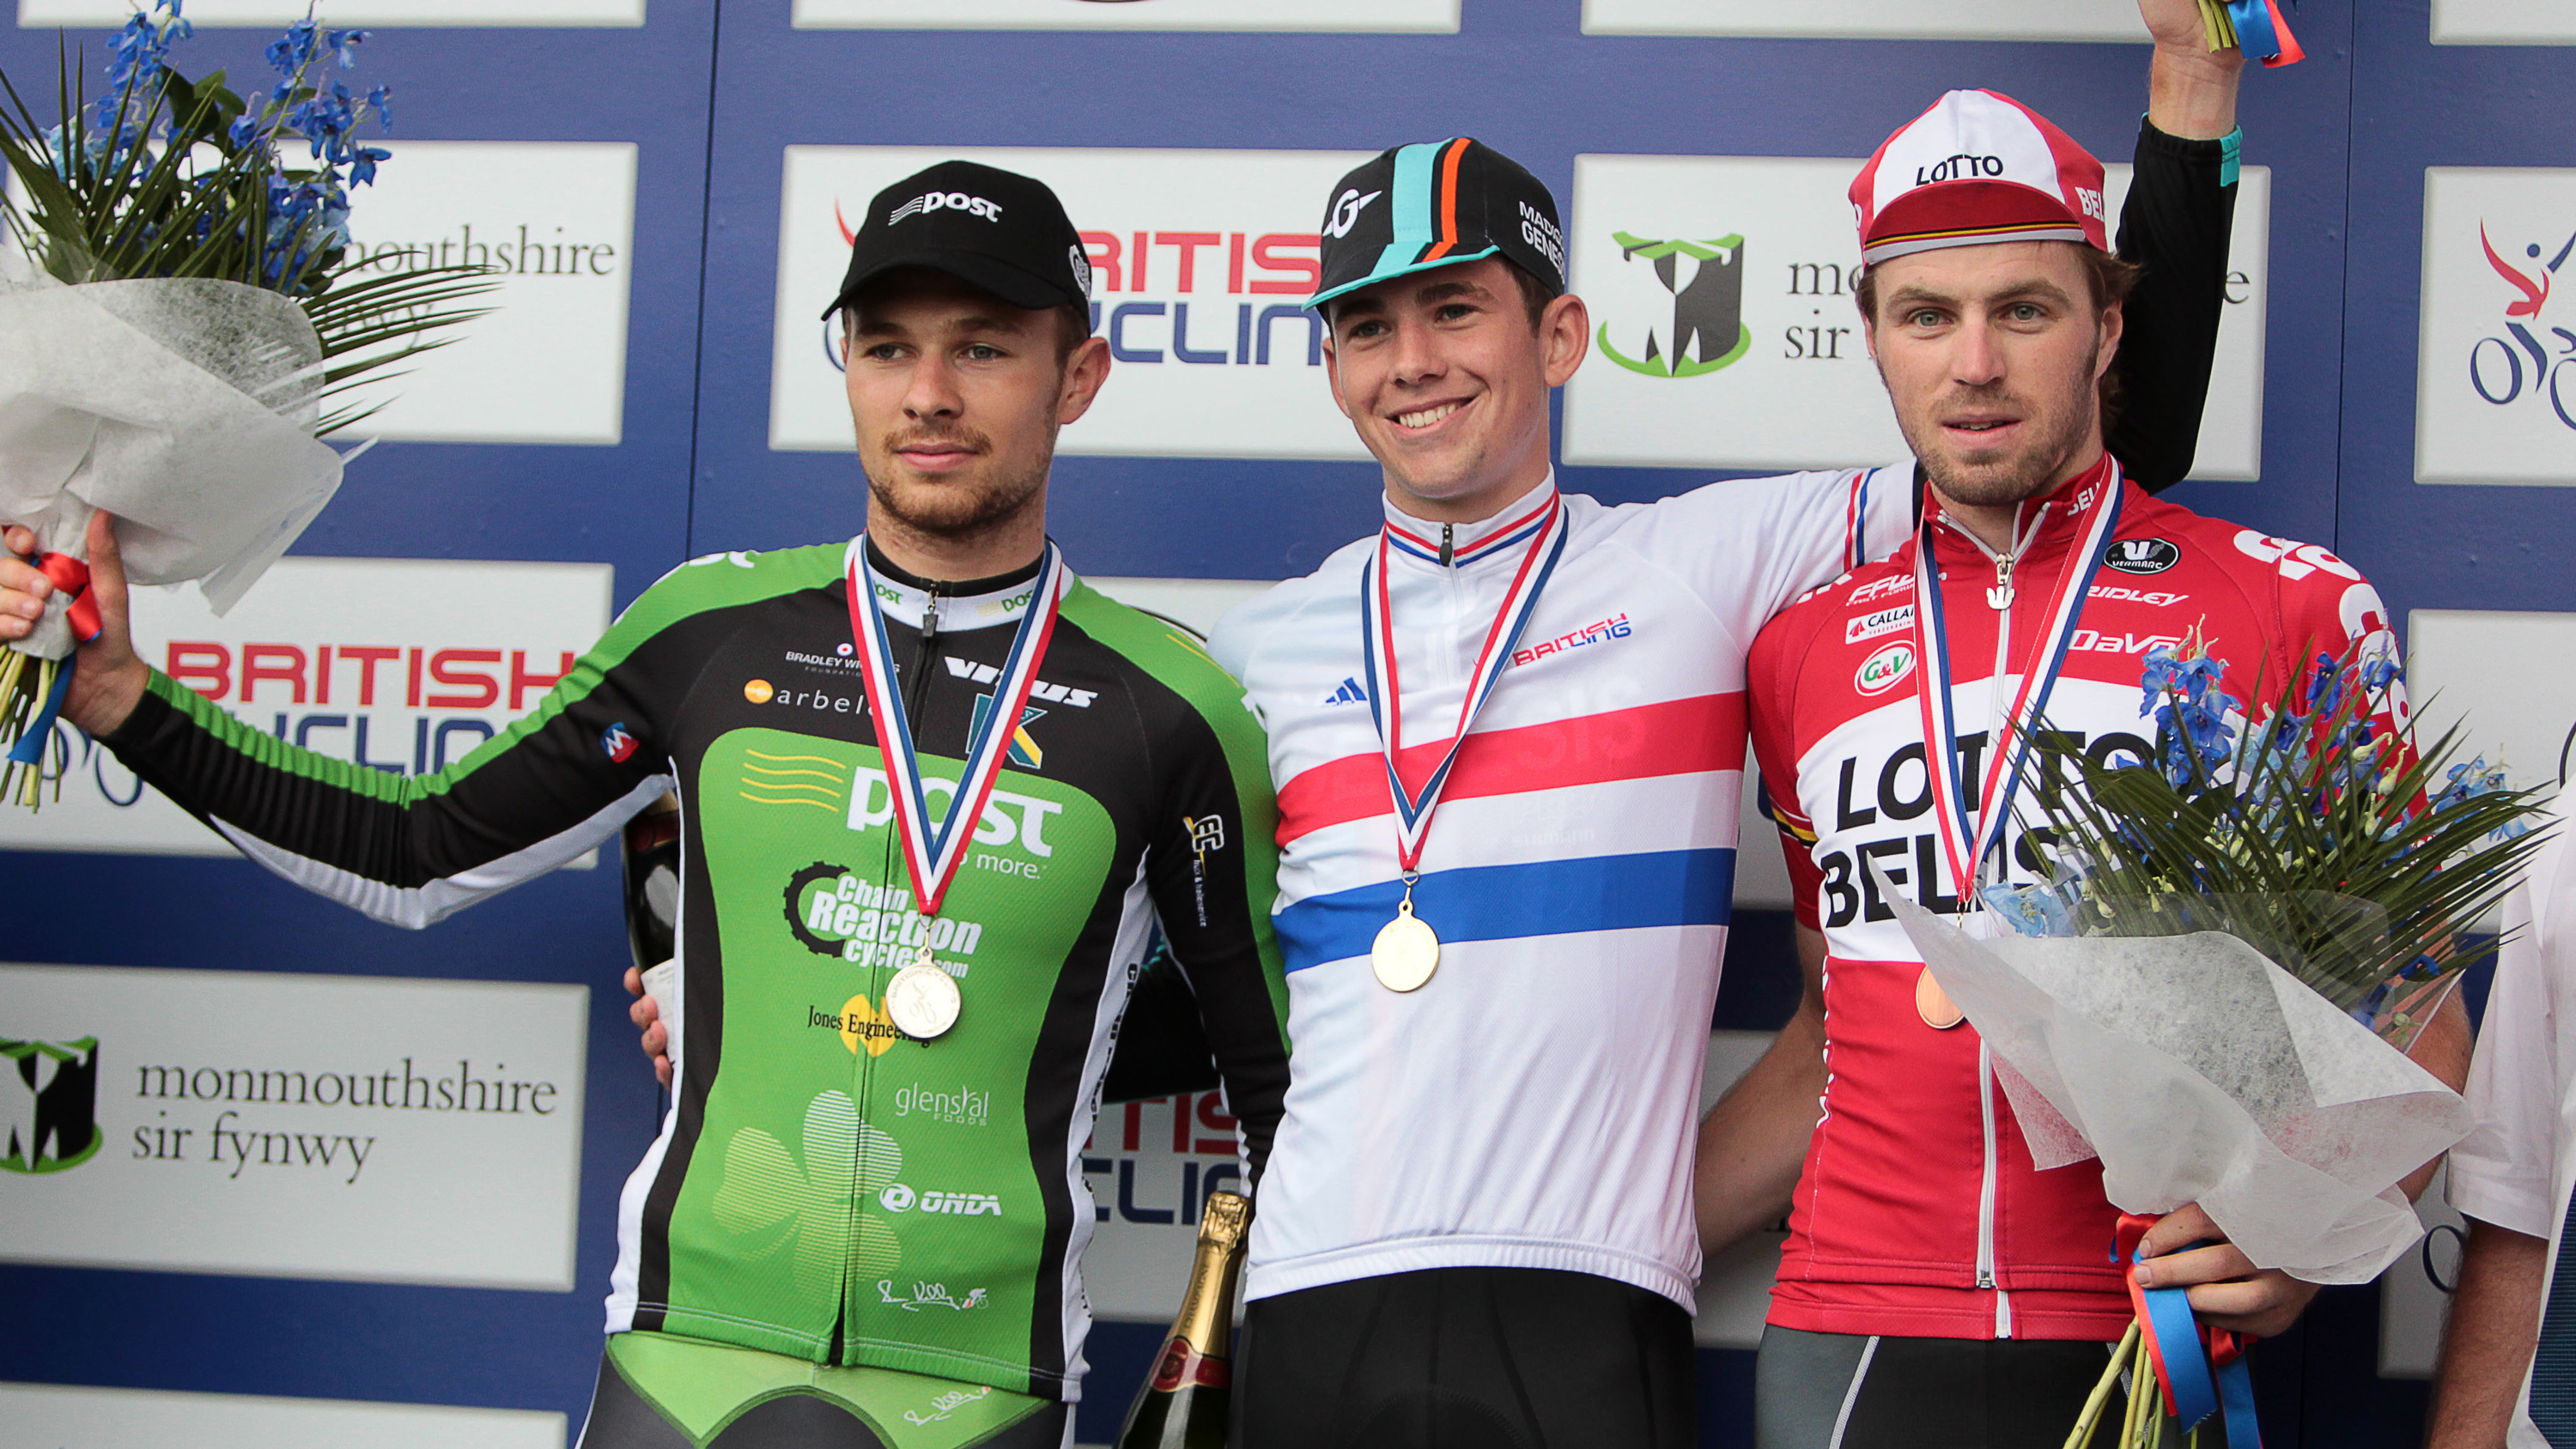 Left to right: Owain Doull, Scott Davies and Dan McLay on the under-23 time trial podium at the 2014 British Cycling National Road Championships.